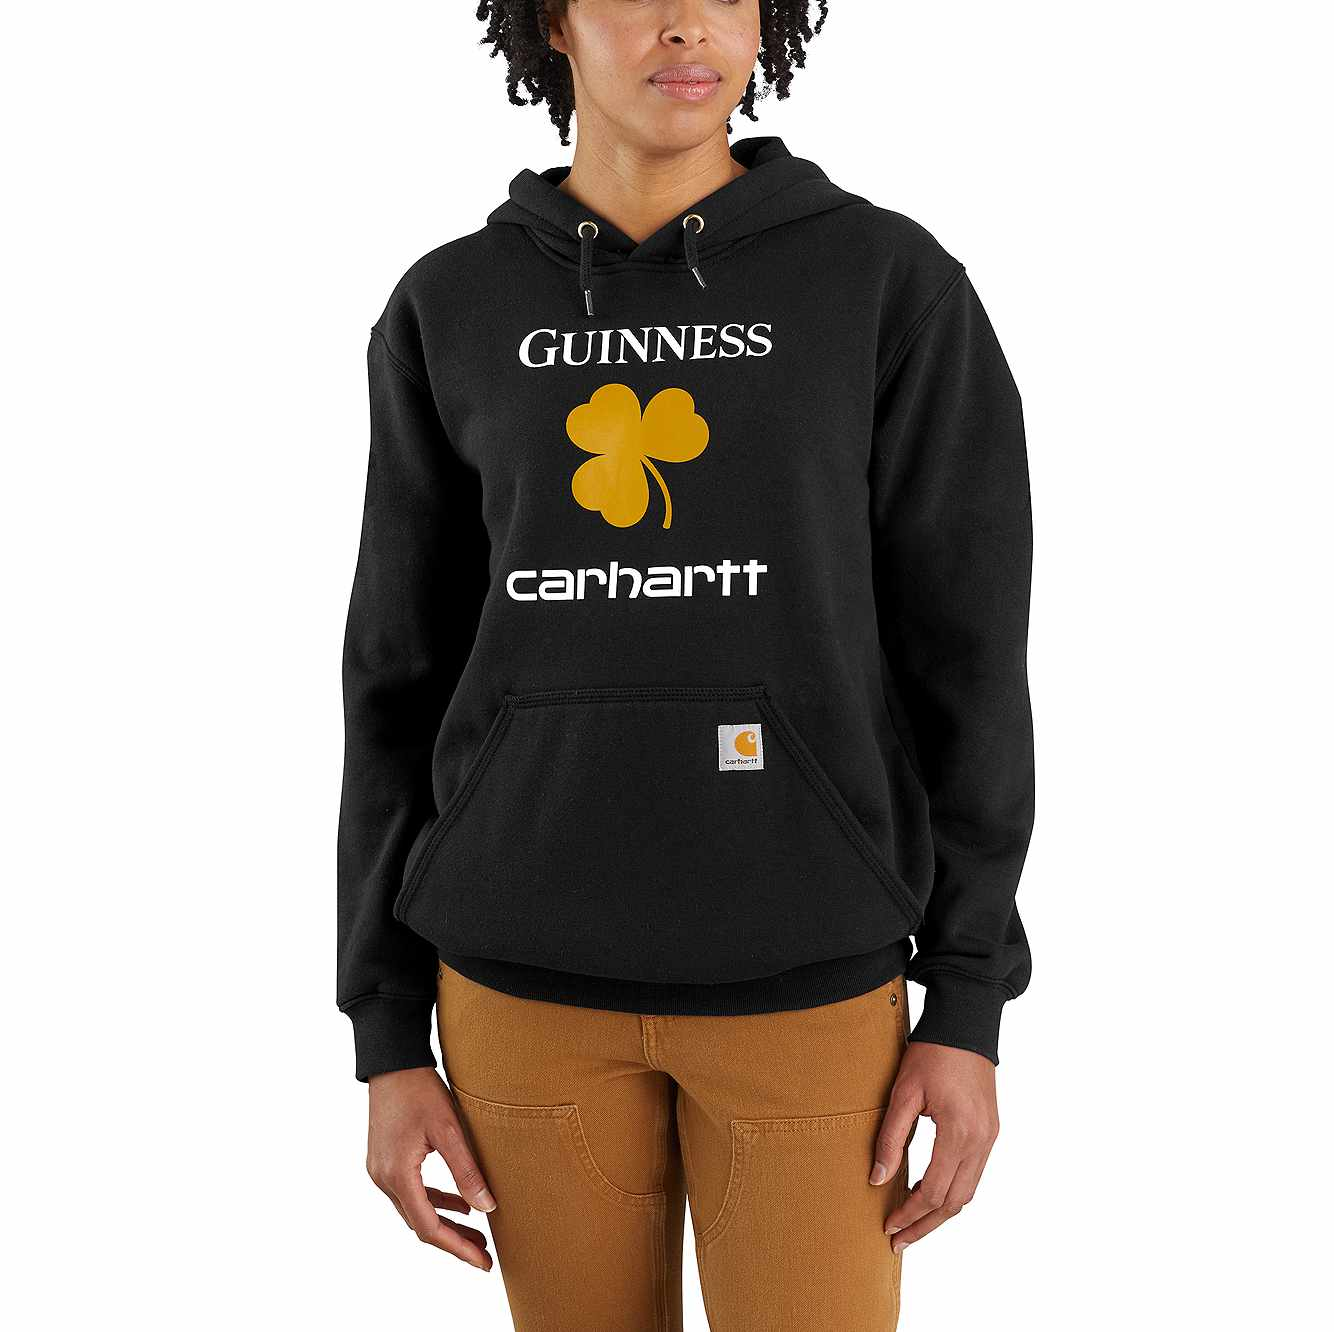 Picture of WOMEN'S RELAXED FIT MIDWEIGHT GUINNESS SWEATSHIRT